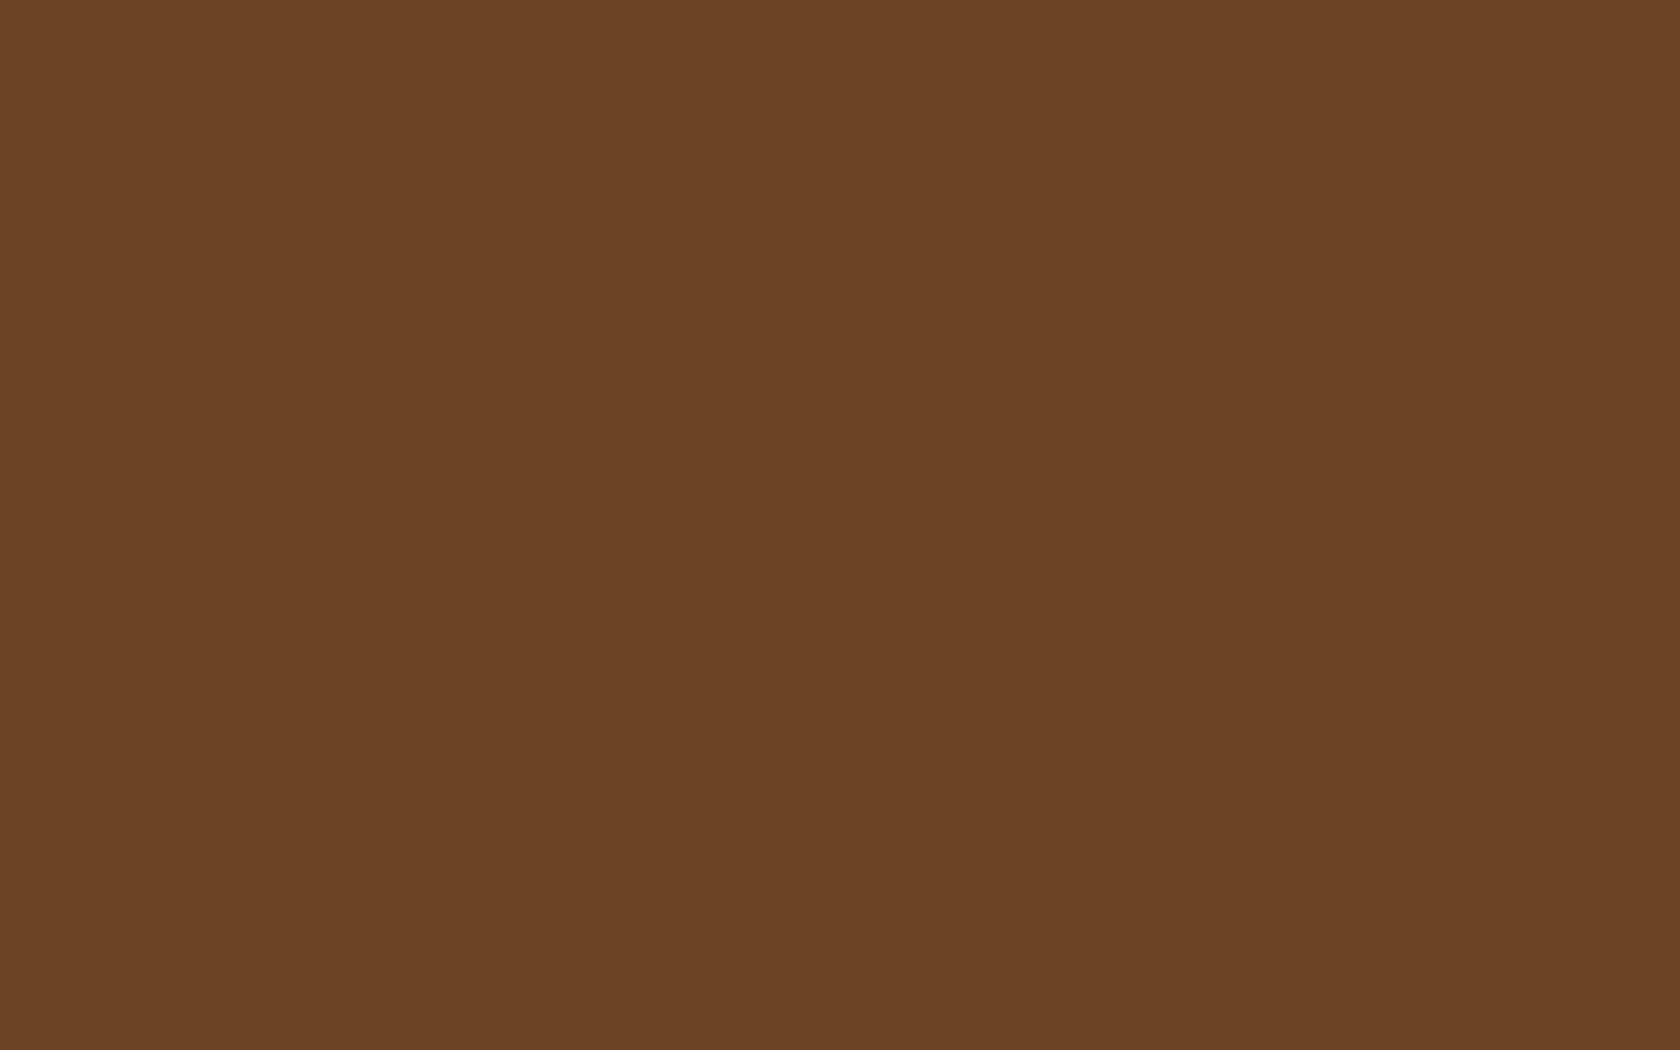 1680x1050 Brown-nose Solid Color Background